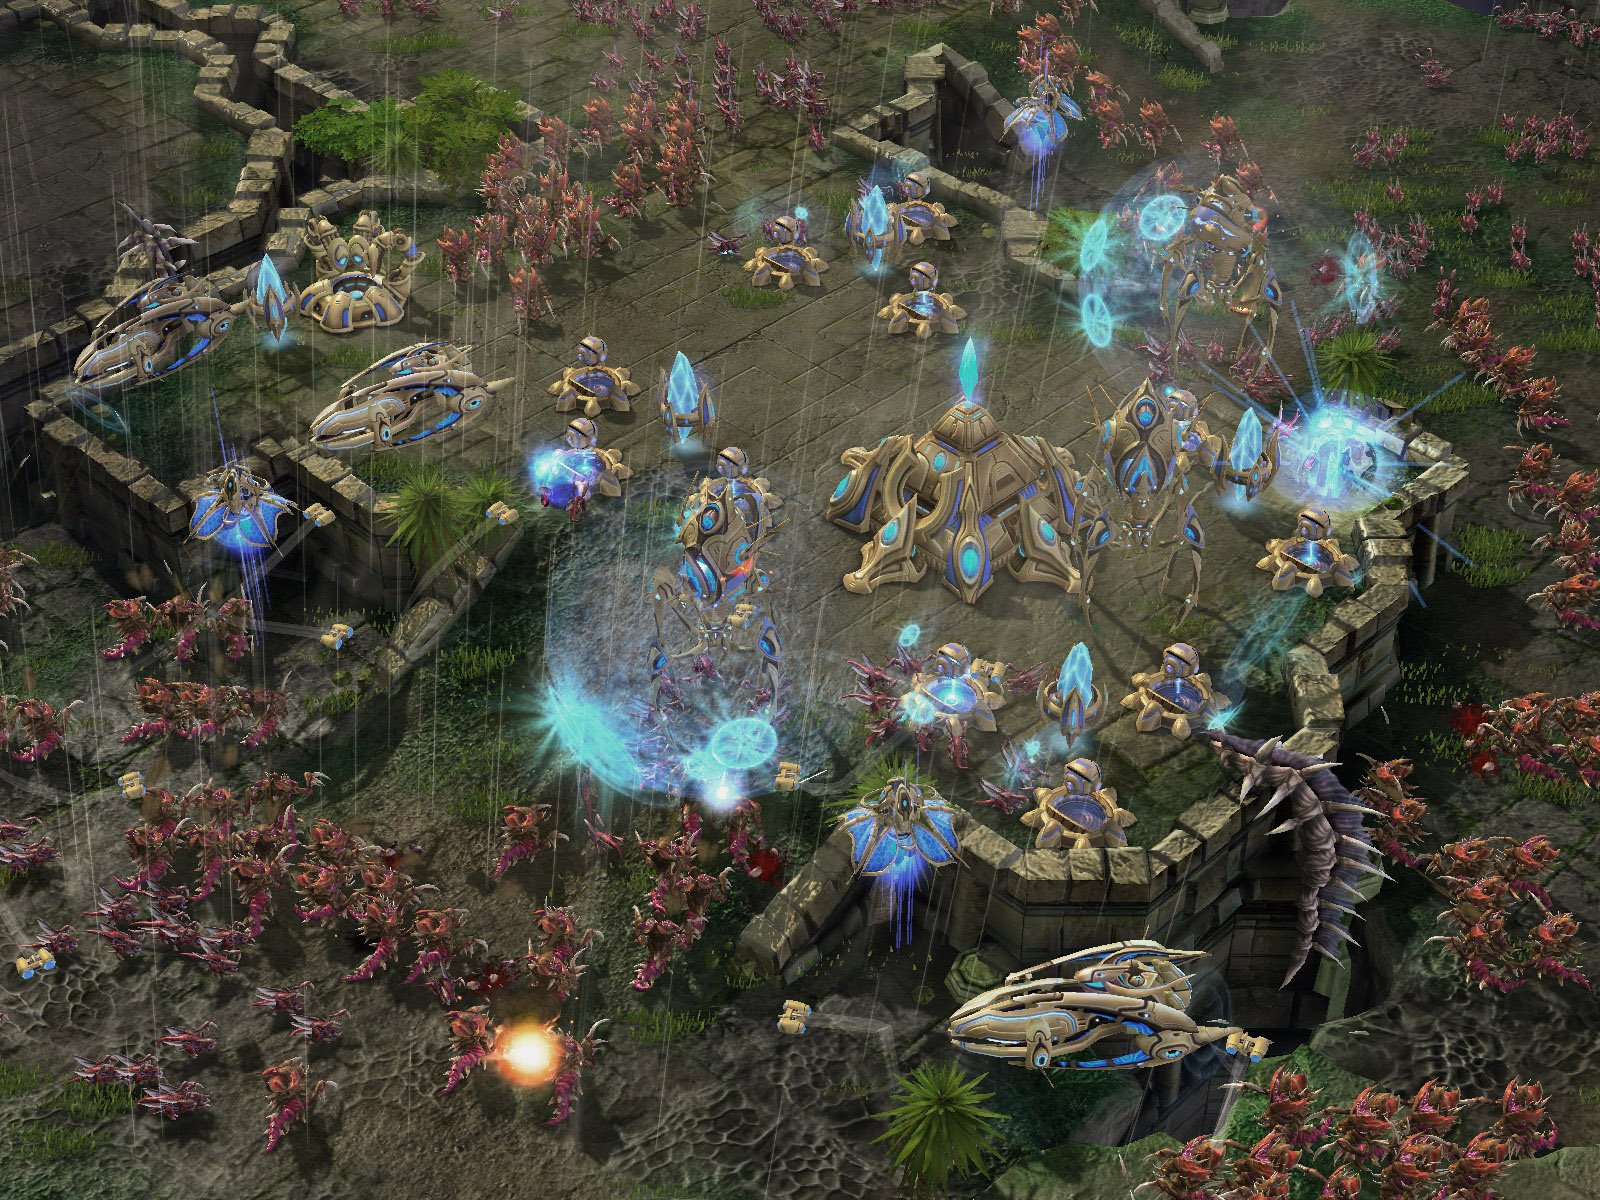 Starcraft II: Wings of Liberty Collector's Edition - PC by Blizzard Entertainment (Image #5)